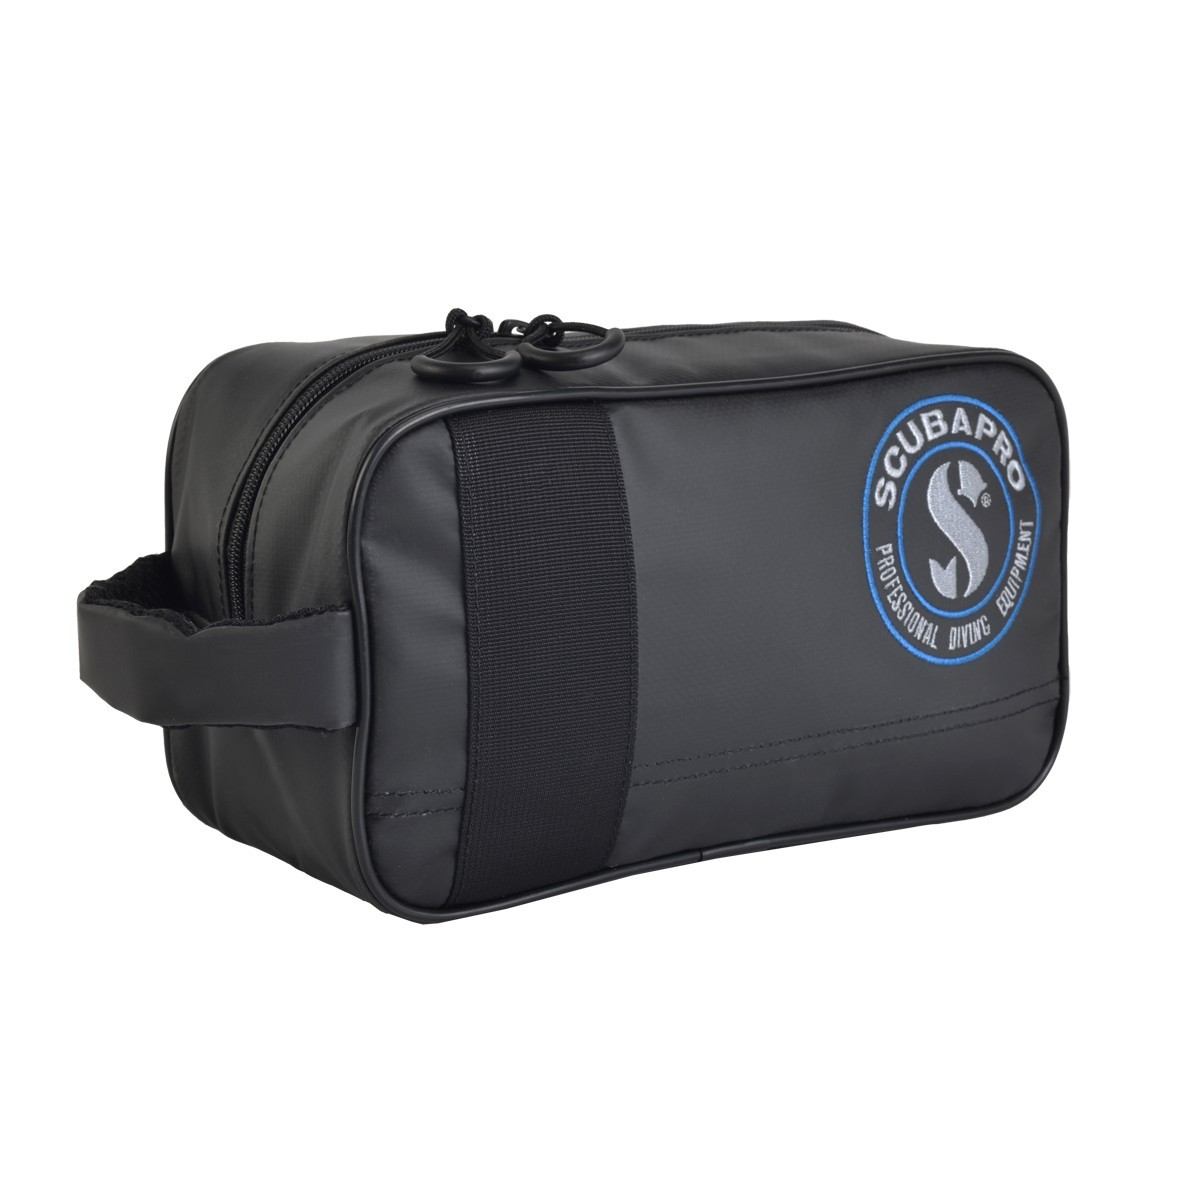 Scubapro Travel Kit Bag